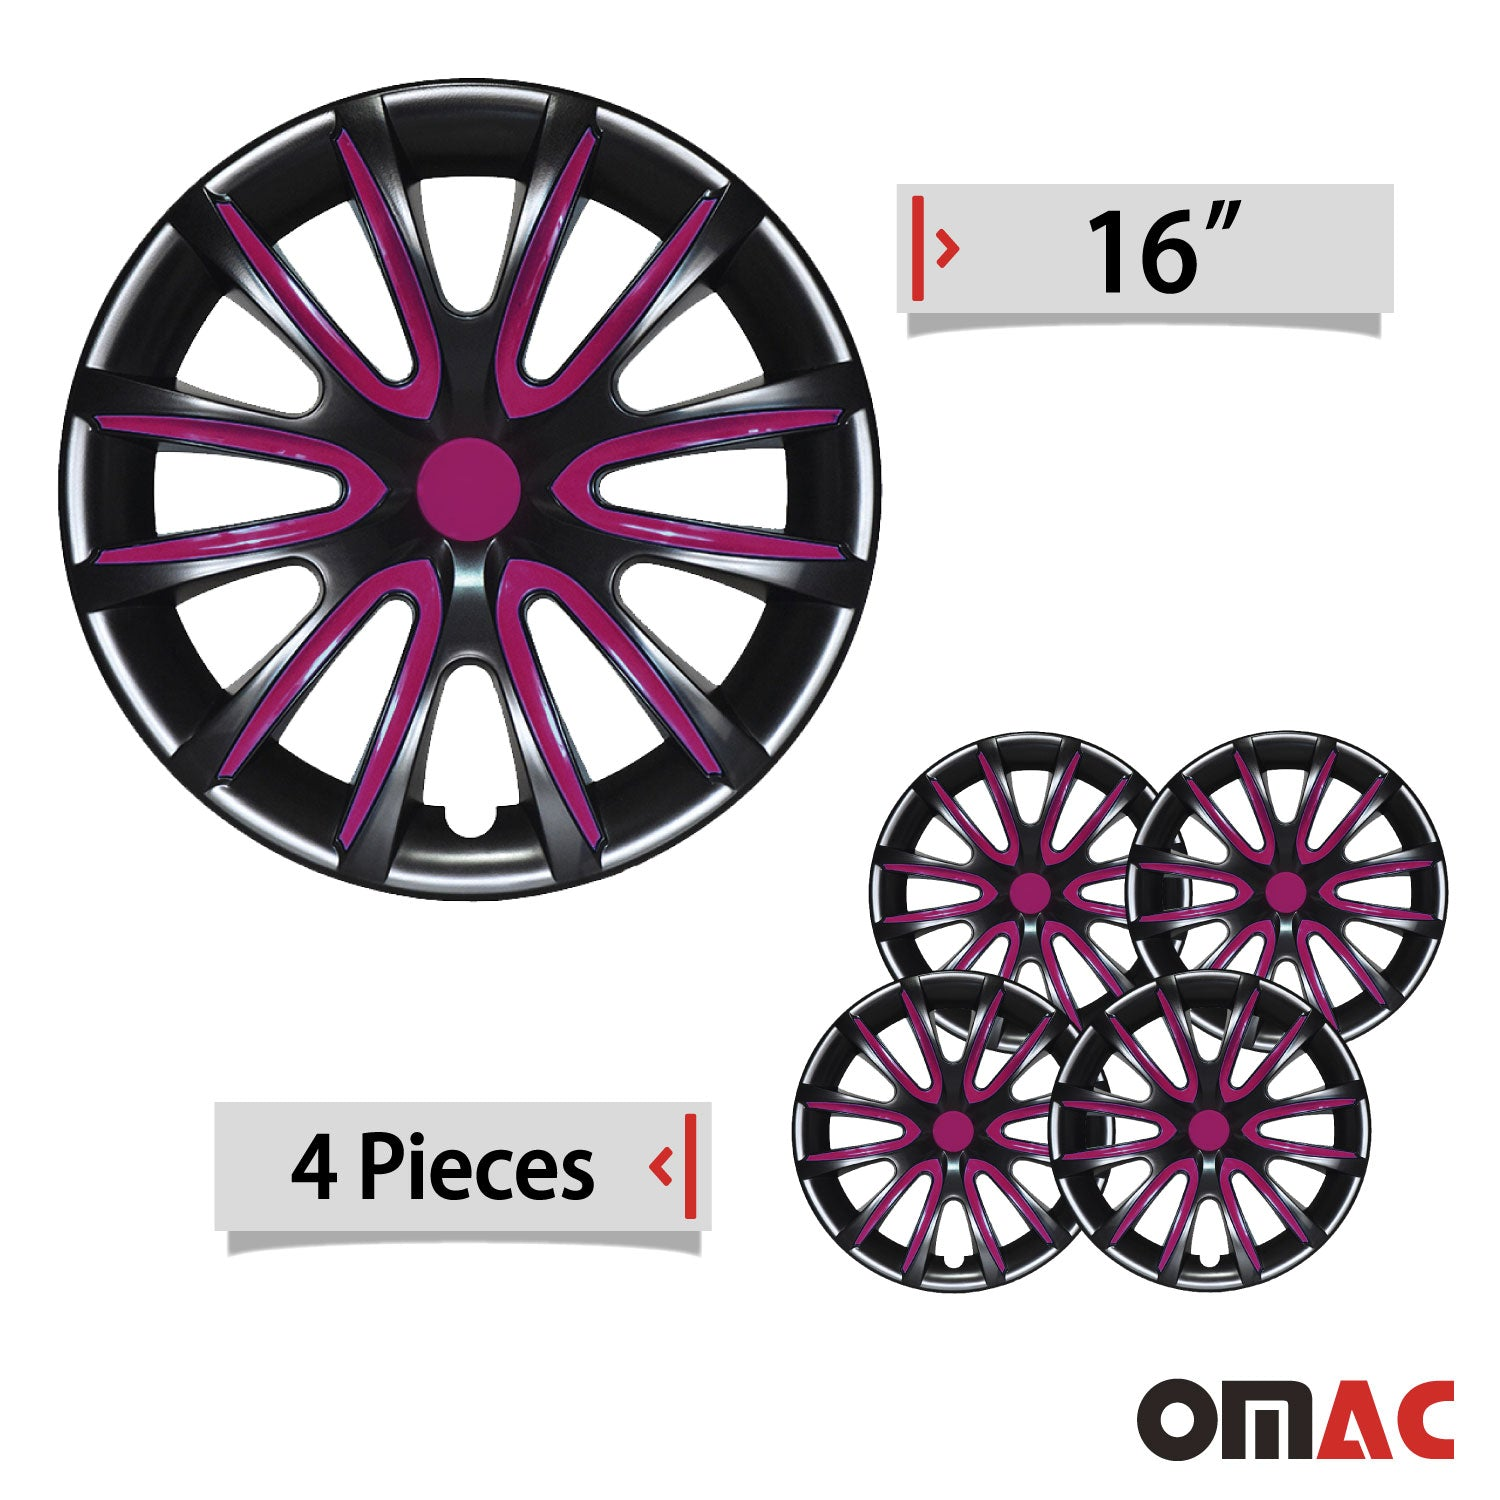 16 Inch Hubcaps Wheel Rim Cover Glossy Black with Violet for Kia Optima 4pcs Set